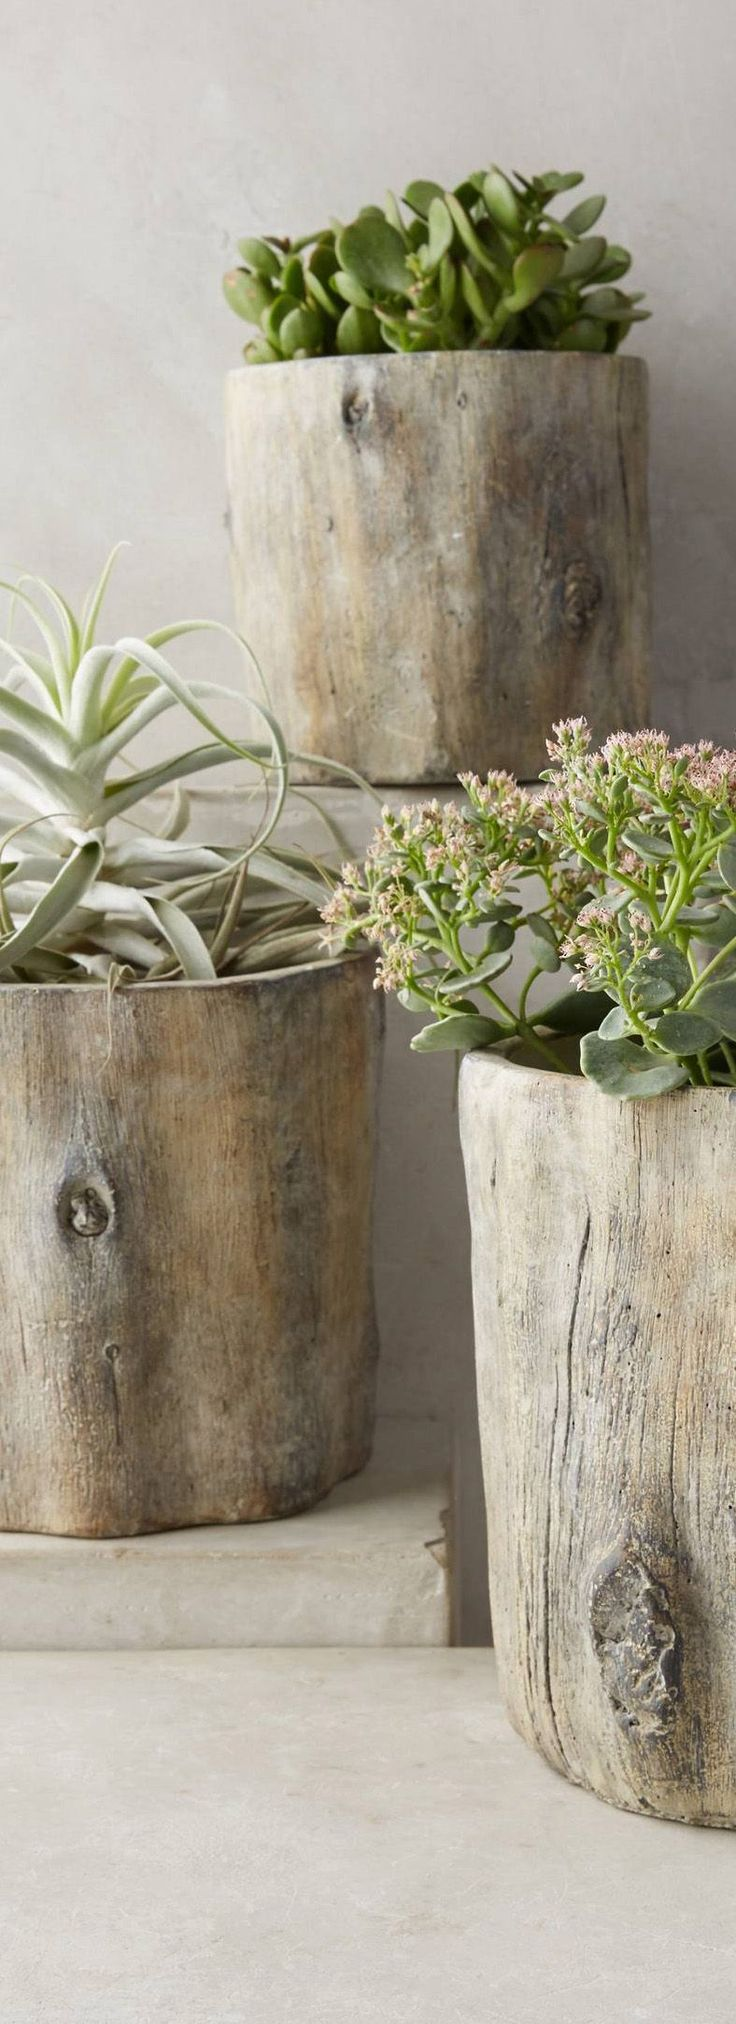 Personal: These tree trunk planters are much more sustainable than regular vases and planters. They are great home decor and put material that would have been wasted to good use.